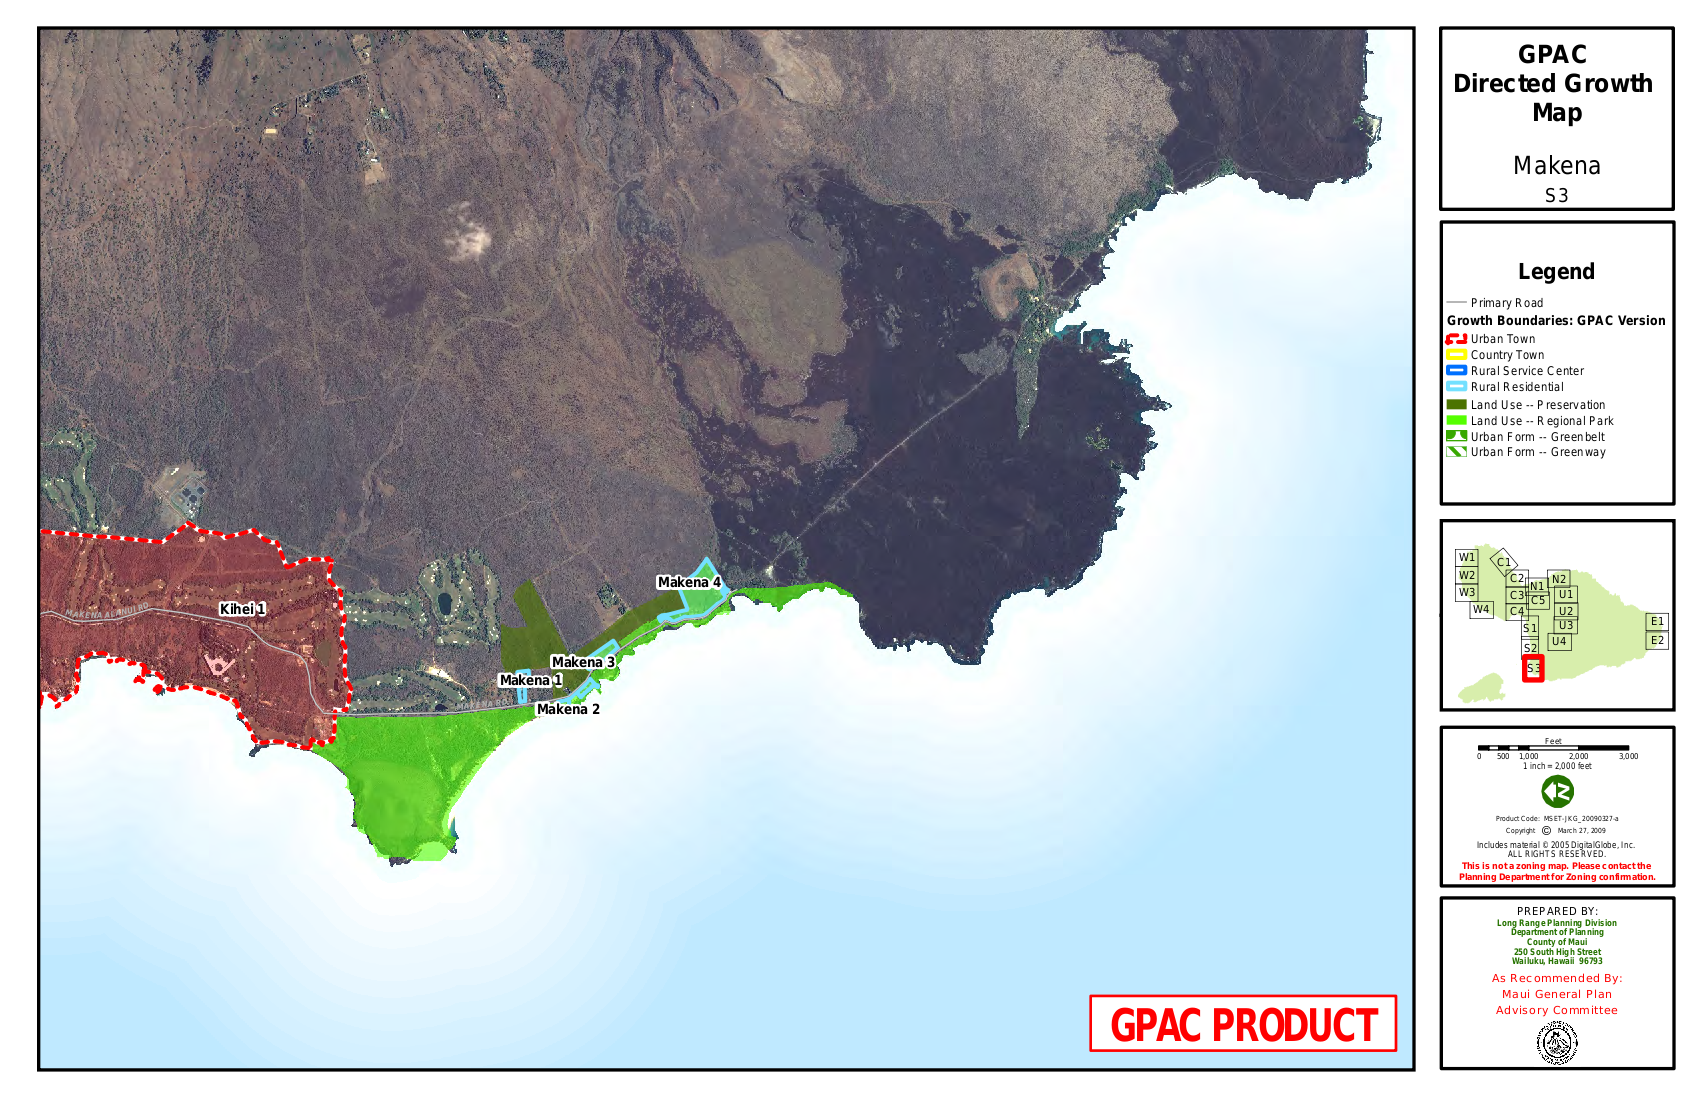 GPAC Directed Growth Map Makena